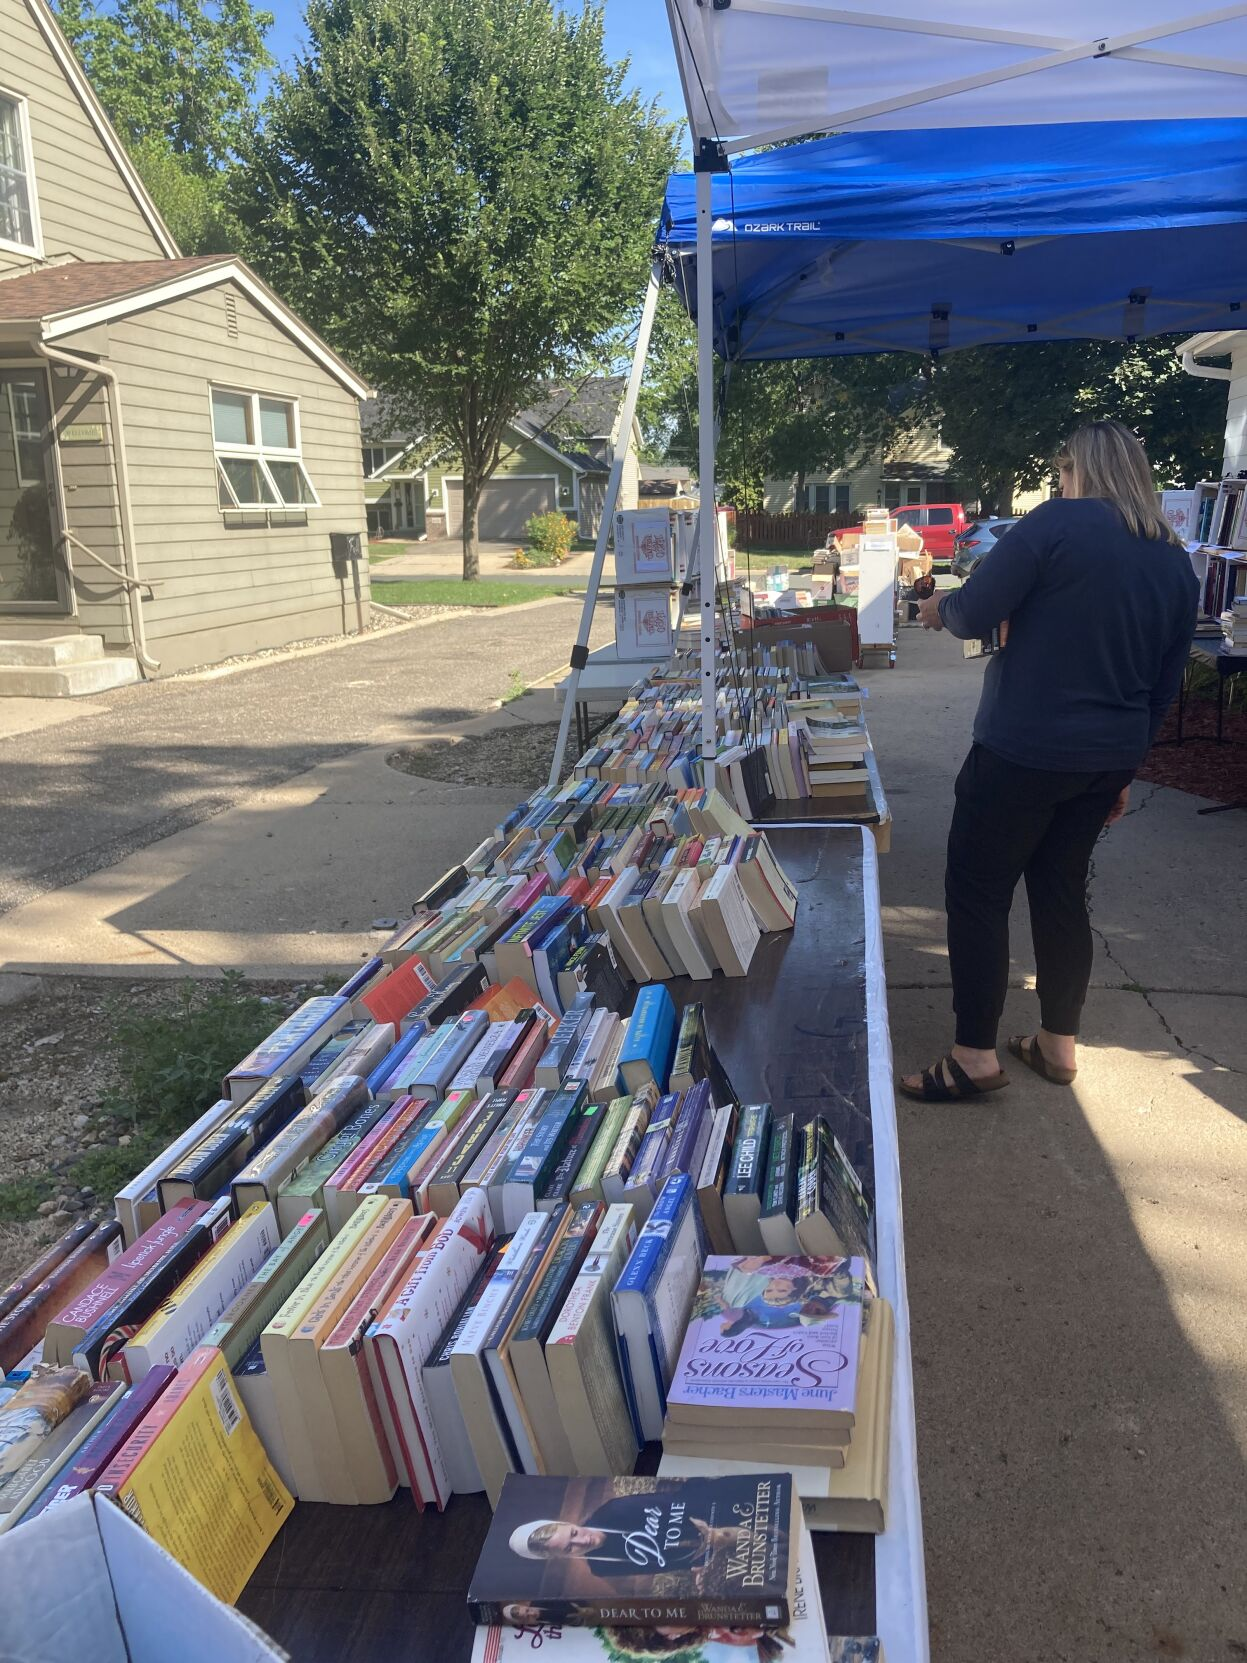 FarmTown Books looking for winter space